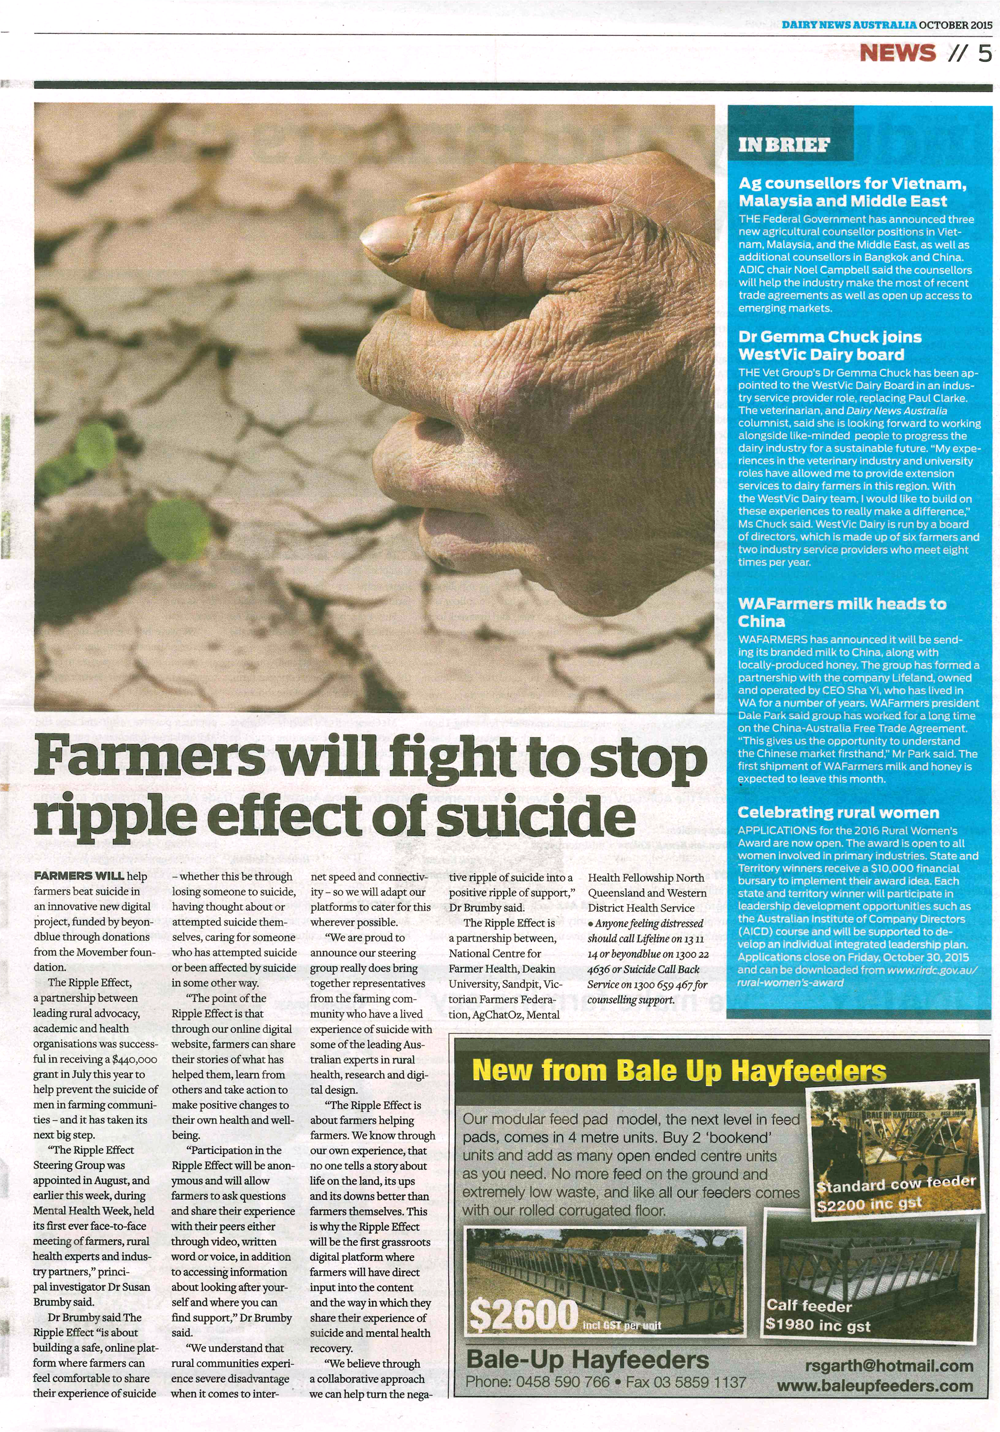 Farmers will fight to stop the ripple effect of suicide - Dairy News article October 2015